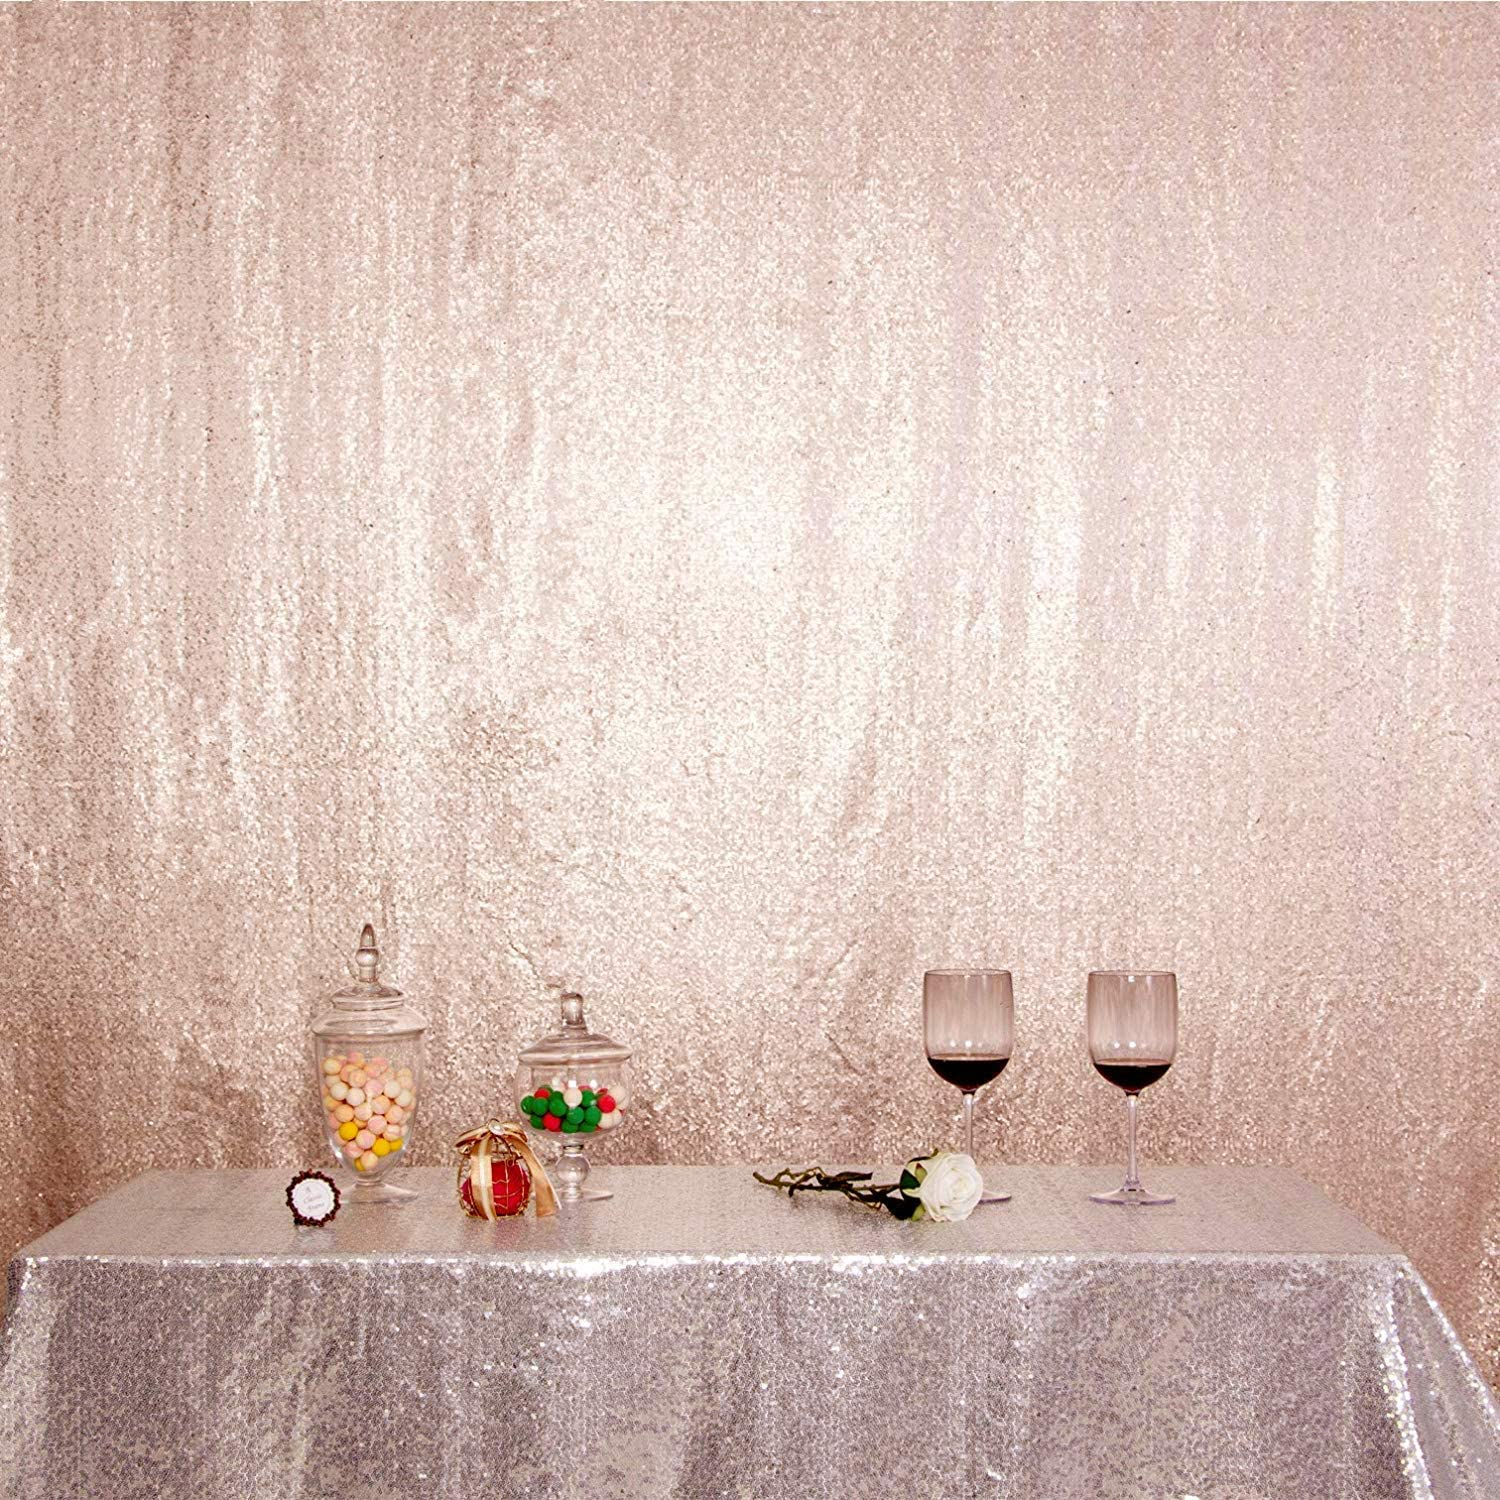 4ft x 7ft, Rose Gold Non-Transparent Backing for Party Decoration, Poise3EHome Sequin Photography Backdrop Curtain with Non See-Through